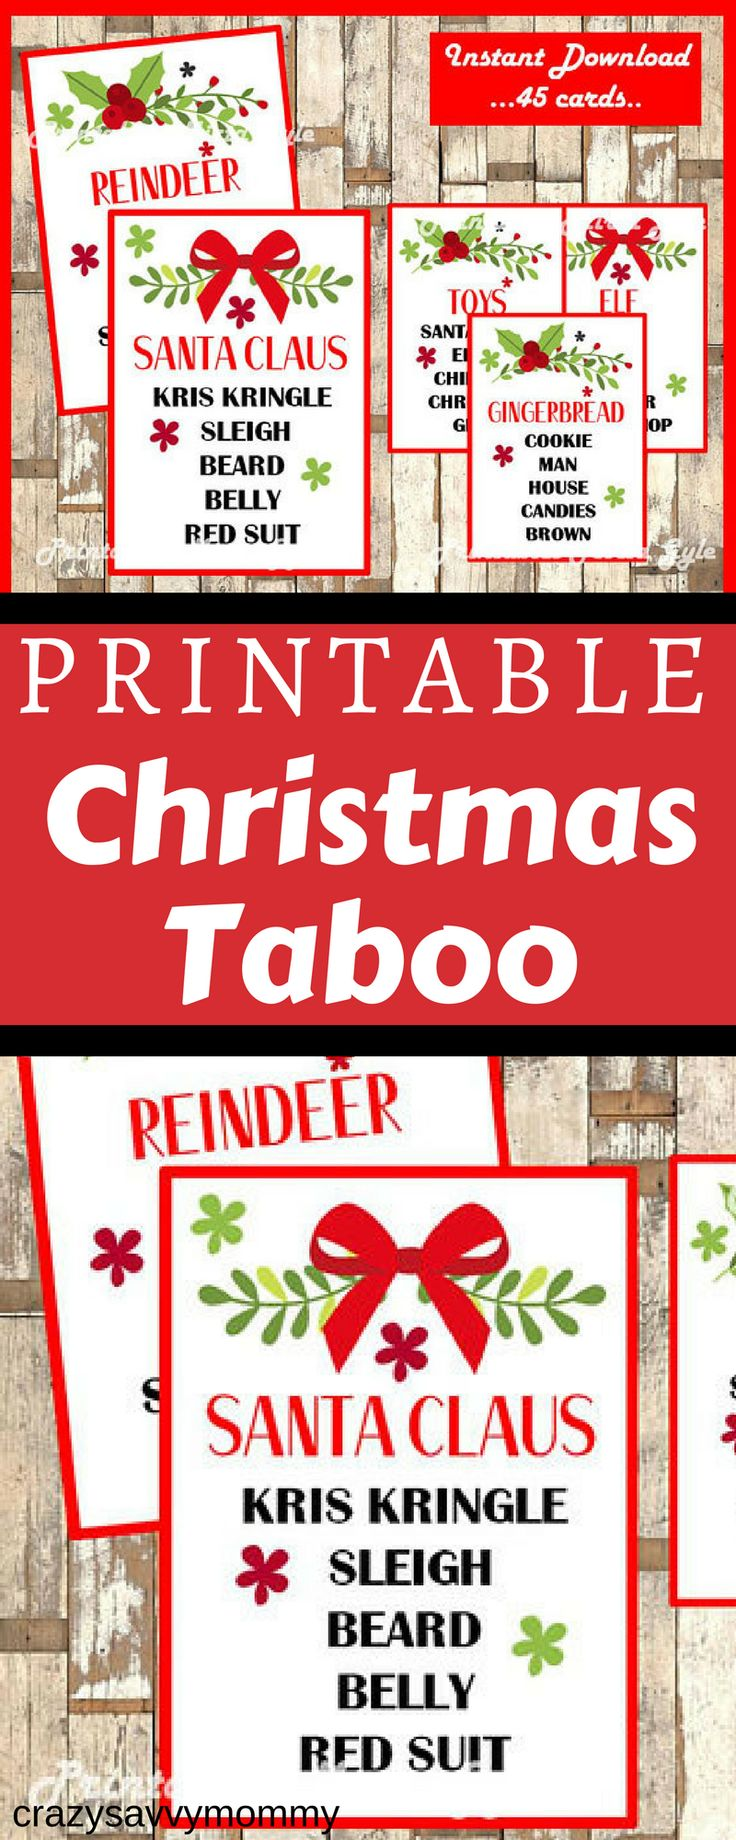 ONLY $2.49!! PRINTABLE Christmas Taboo Game. Celebrate the holidays with this fun and festive Christmas Taboo game includes 45 unique playing cards.TABOO GAME CARDS are perfect for your holiday party with kids, teens or adults. Click the link to get it NOW at Etsy.com! #ad #christmaspartyideas #christmas #diychristmasdecor #printables #christmasgames #kidchristmasparty